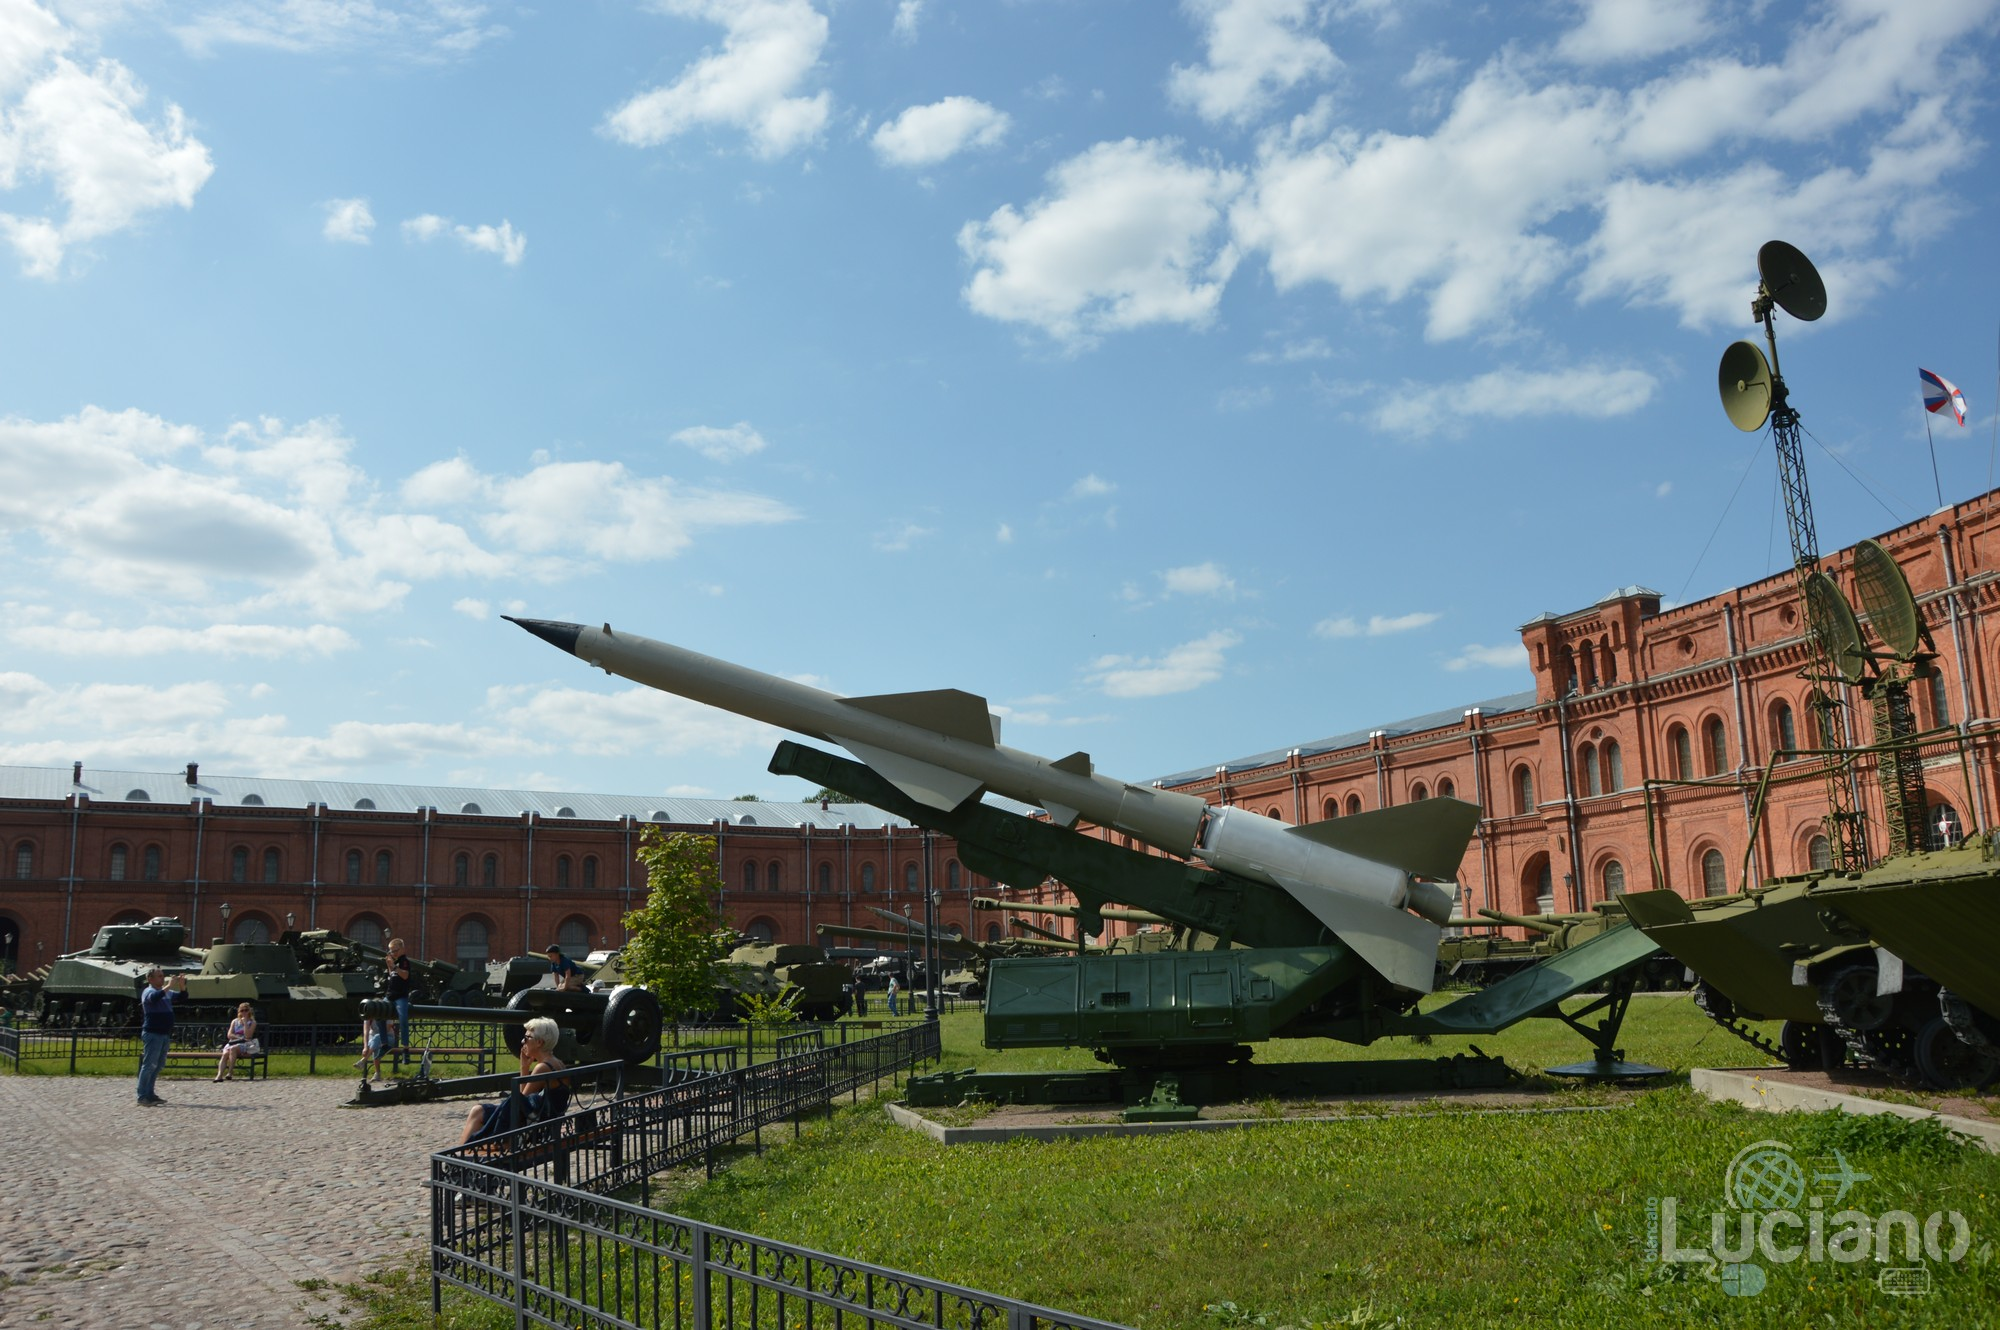 Military-Historical-Museum-of-Artillery-Engineer-and-Signal-Corps-St-Petersburg-Russia-Luciano-Blancato- (52)